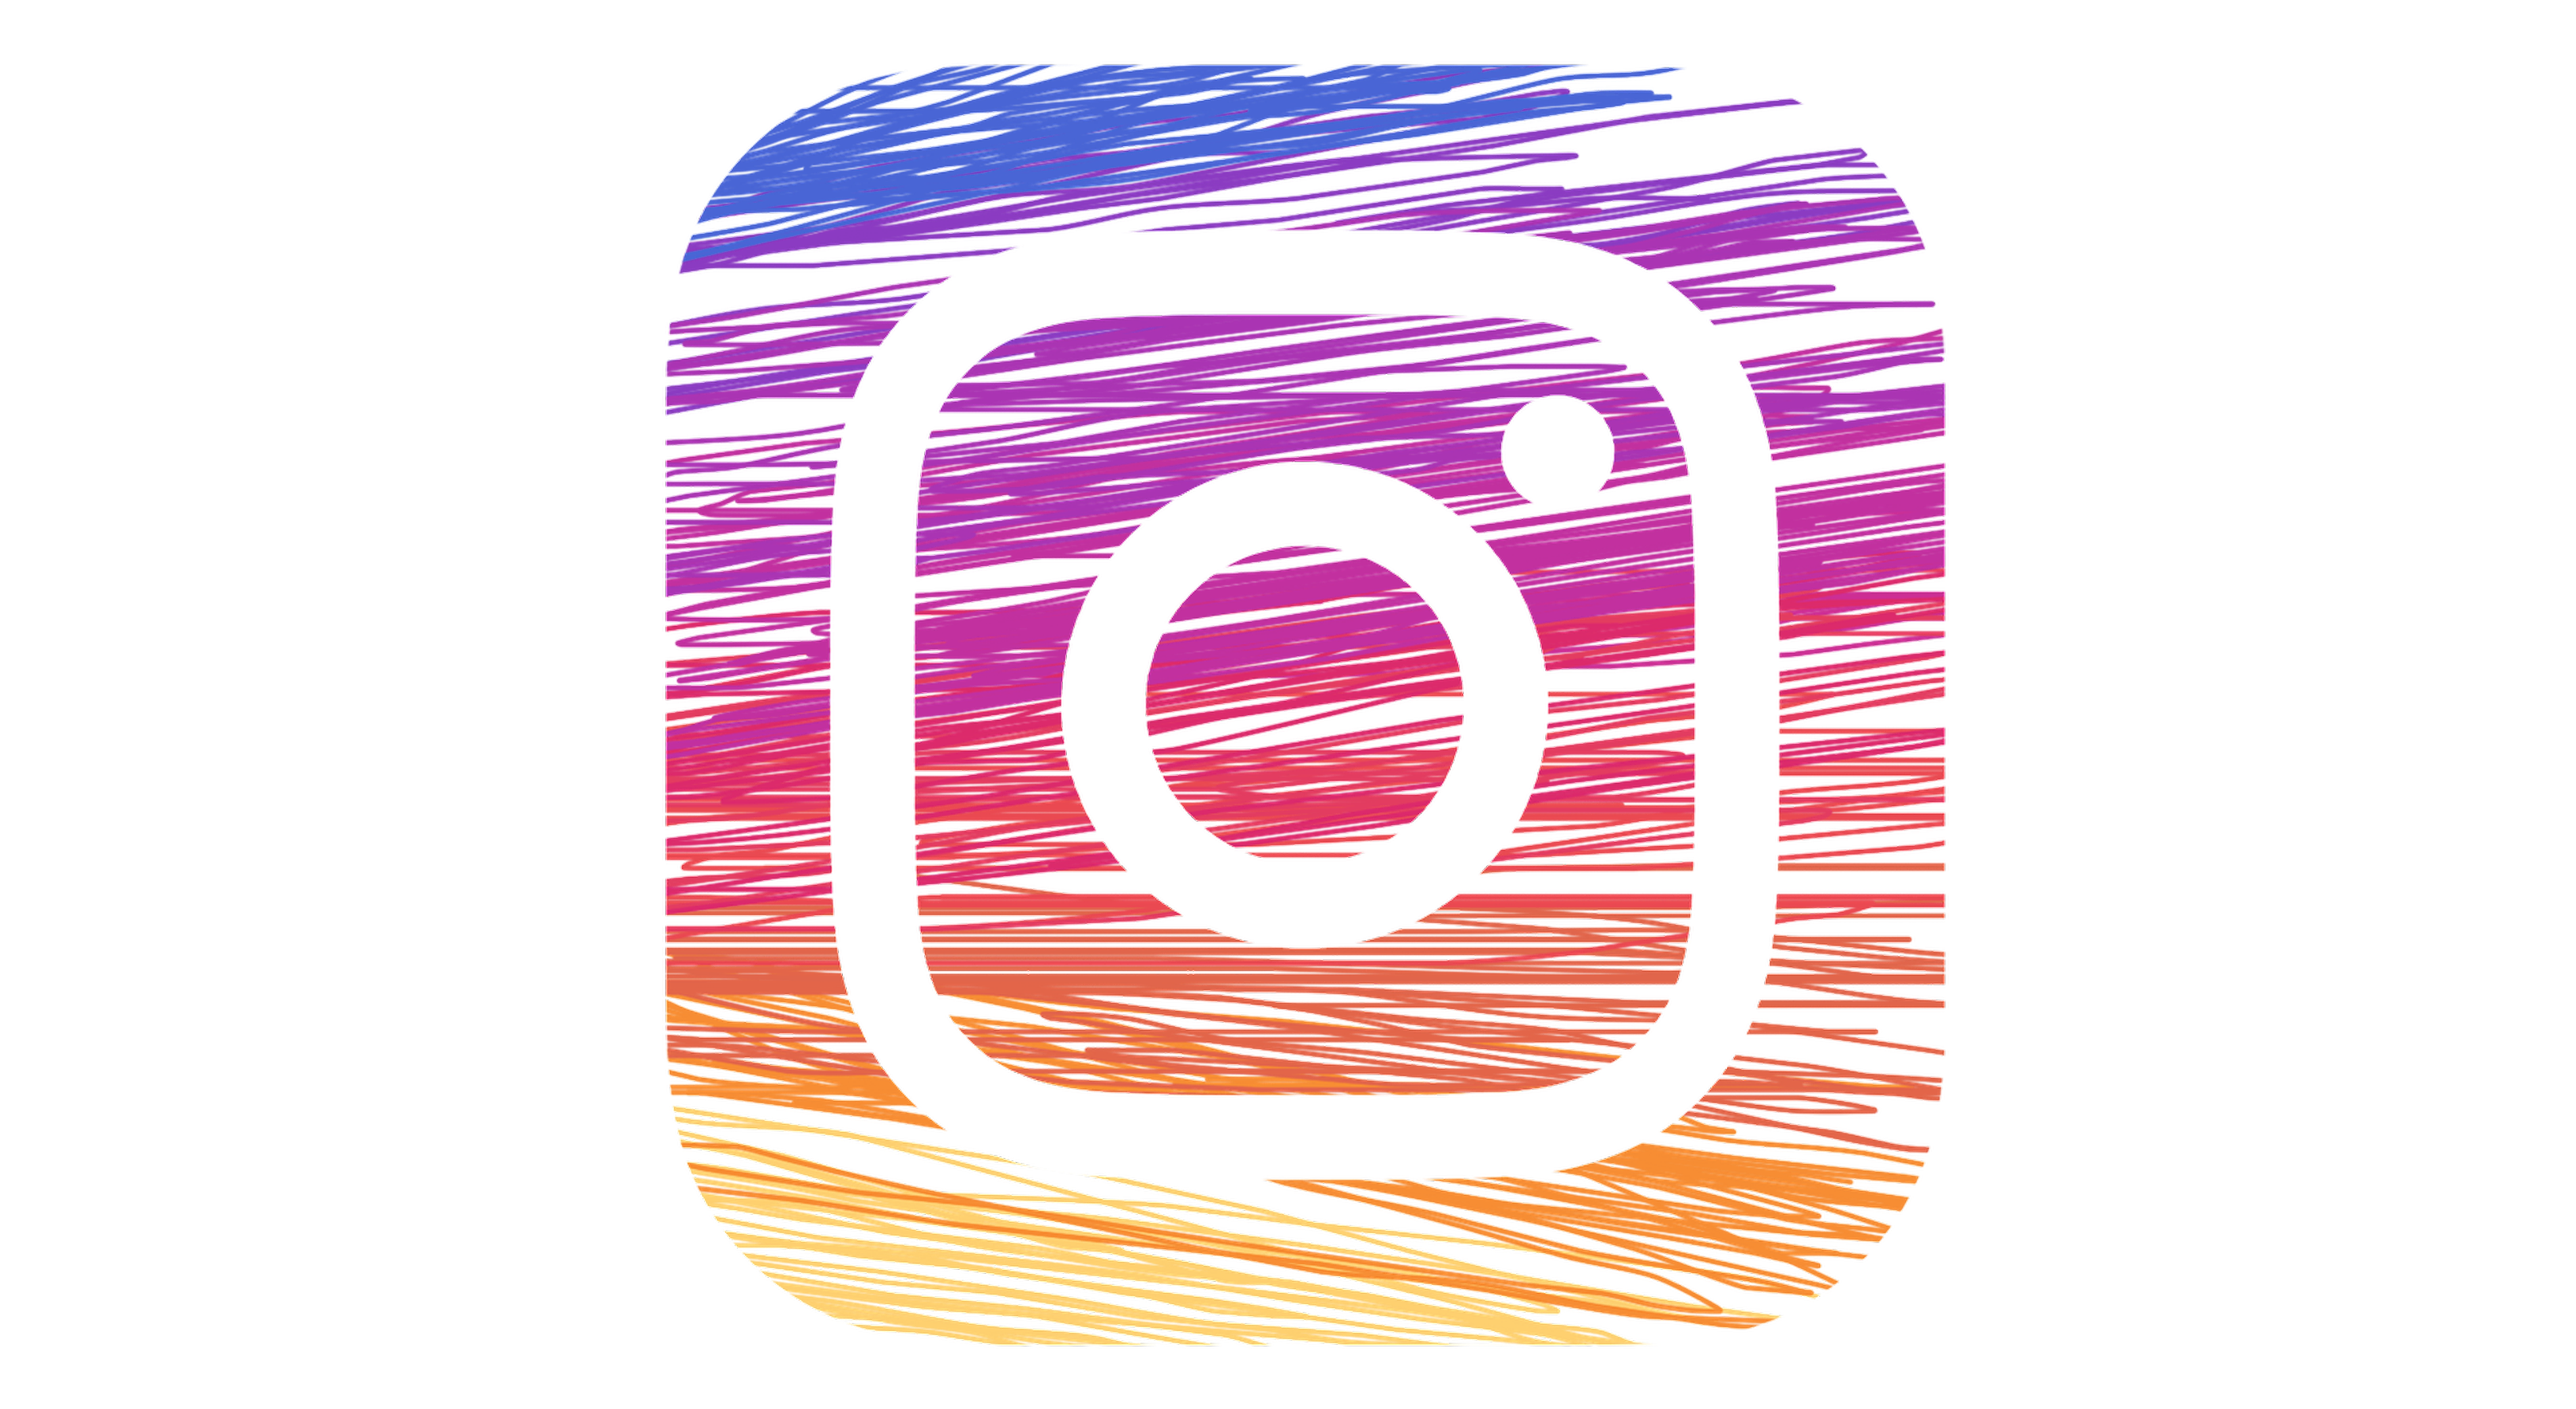 New instagram clipart clip art freeuse Instagram Logo Drawing at GetDrawings.com | Free for personal use ... clip art freeuse